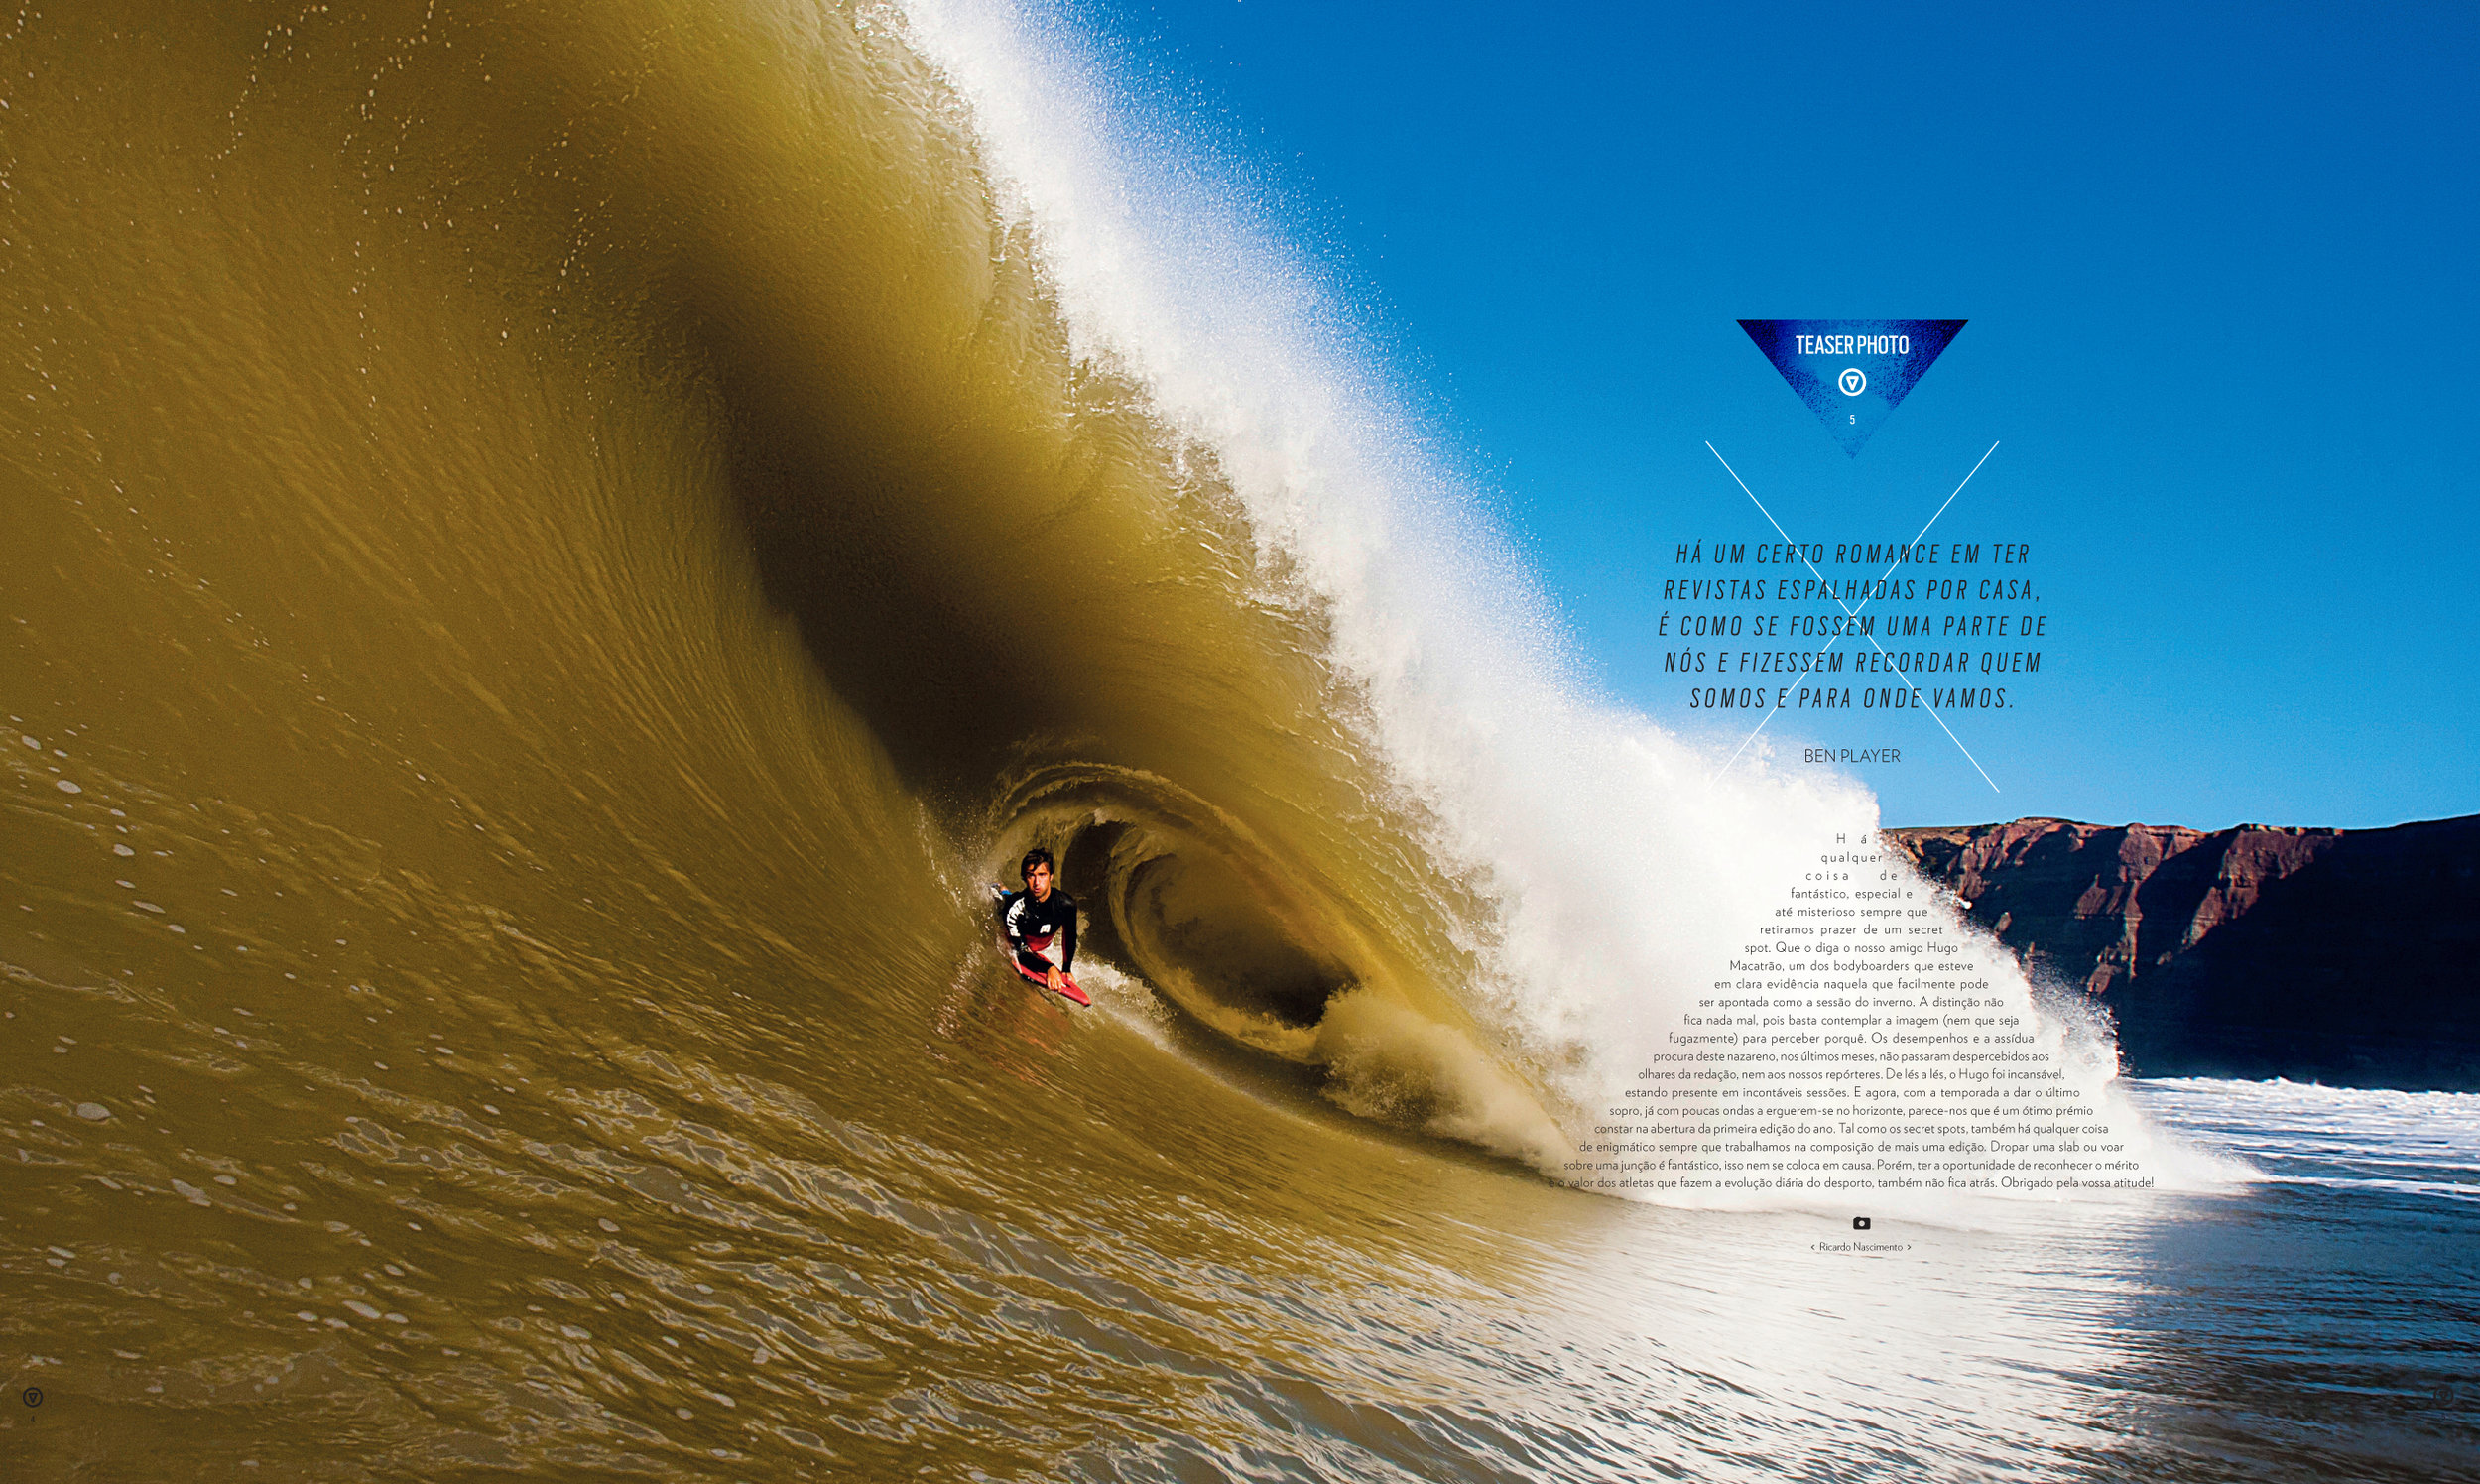 Bodyboard water photograpy barrel Portugal.jpg